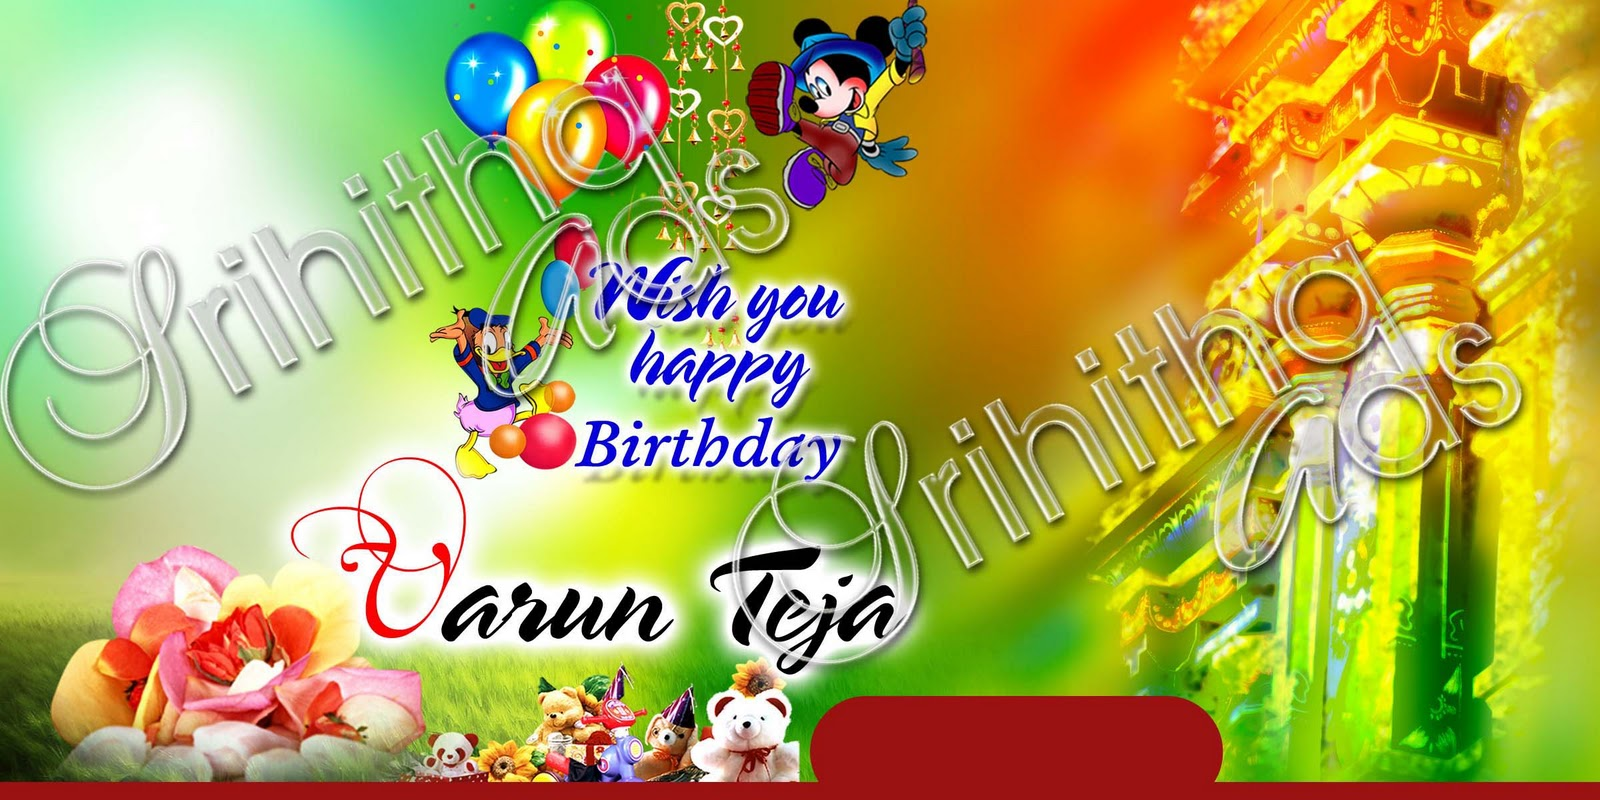 birthday flex banner background design ; birthday-flex-banner-background-design-7